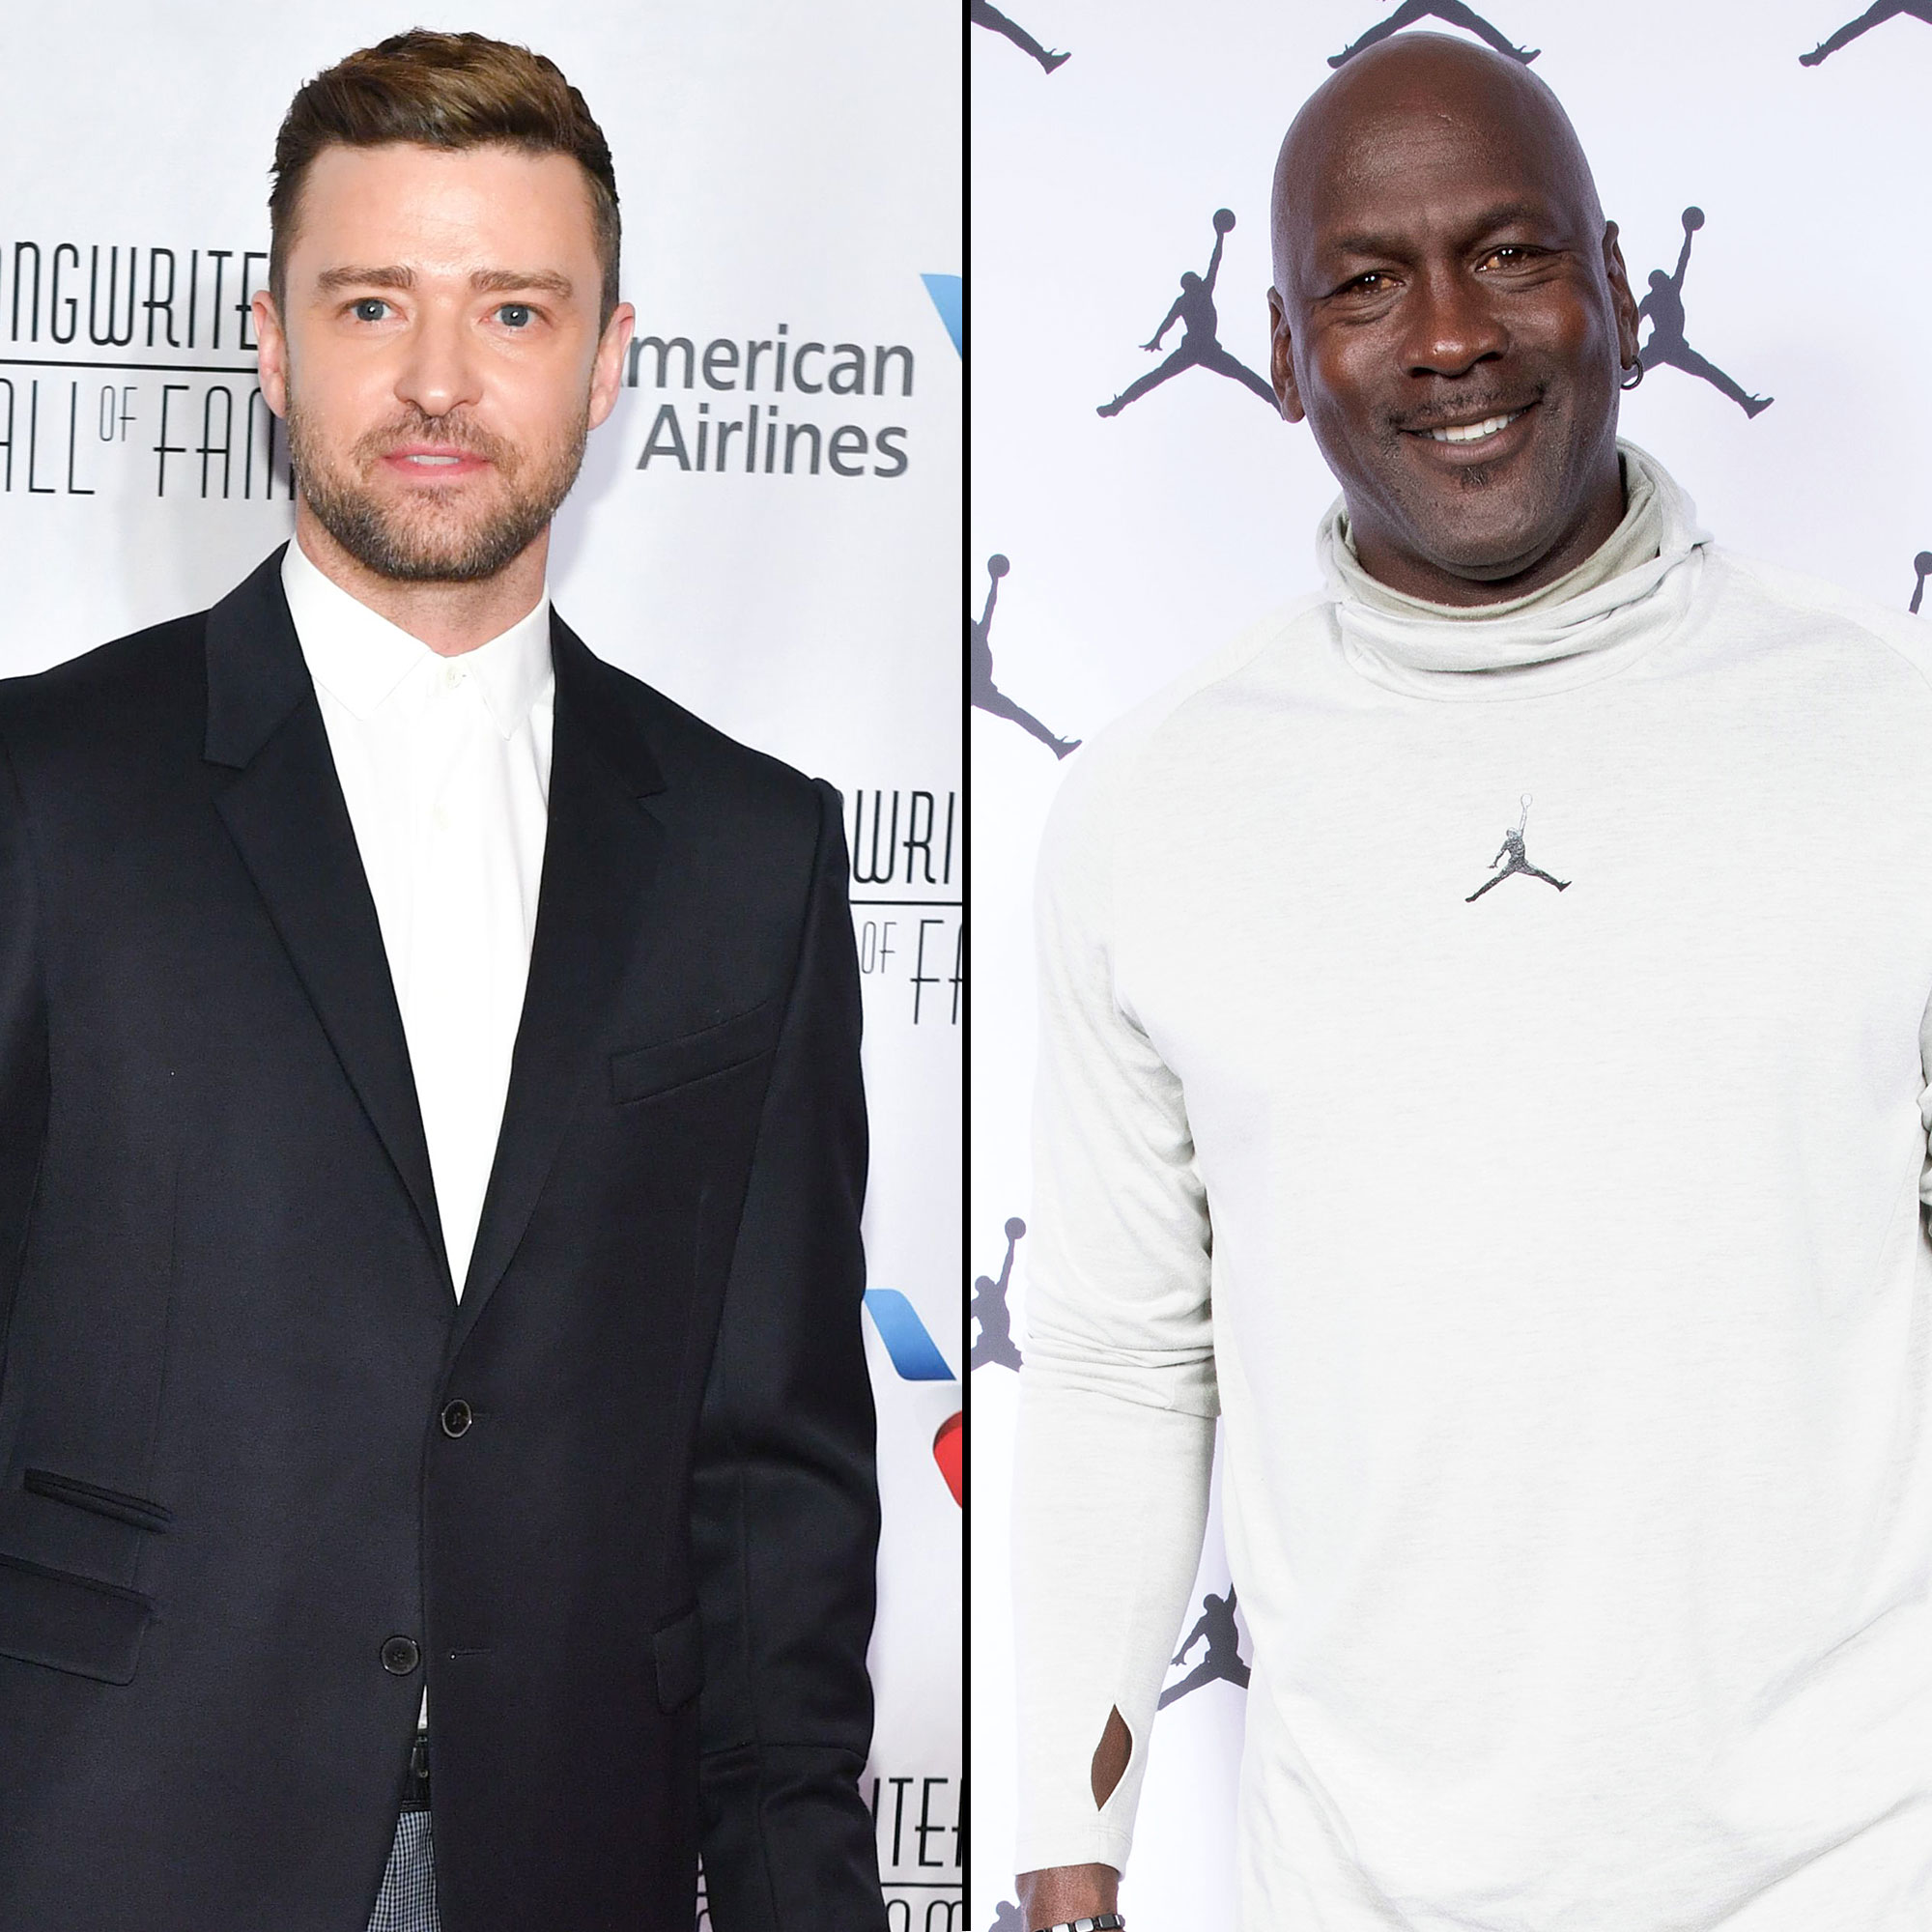 Stars Who Give Back: Justin Timberlake, Michael Jordan and More